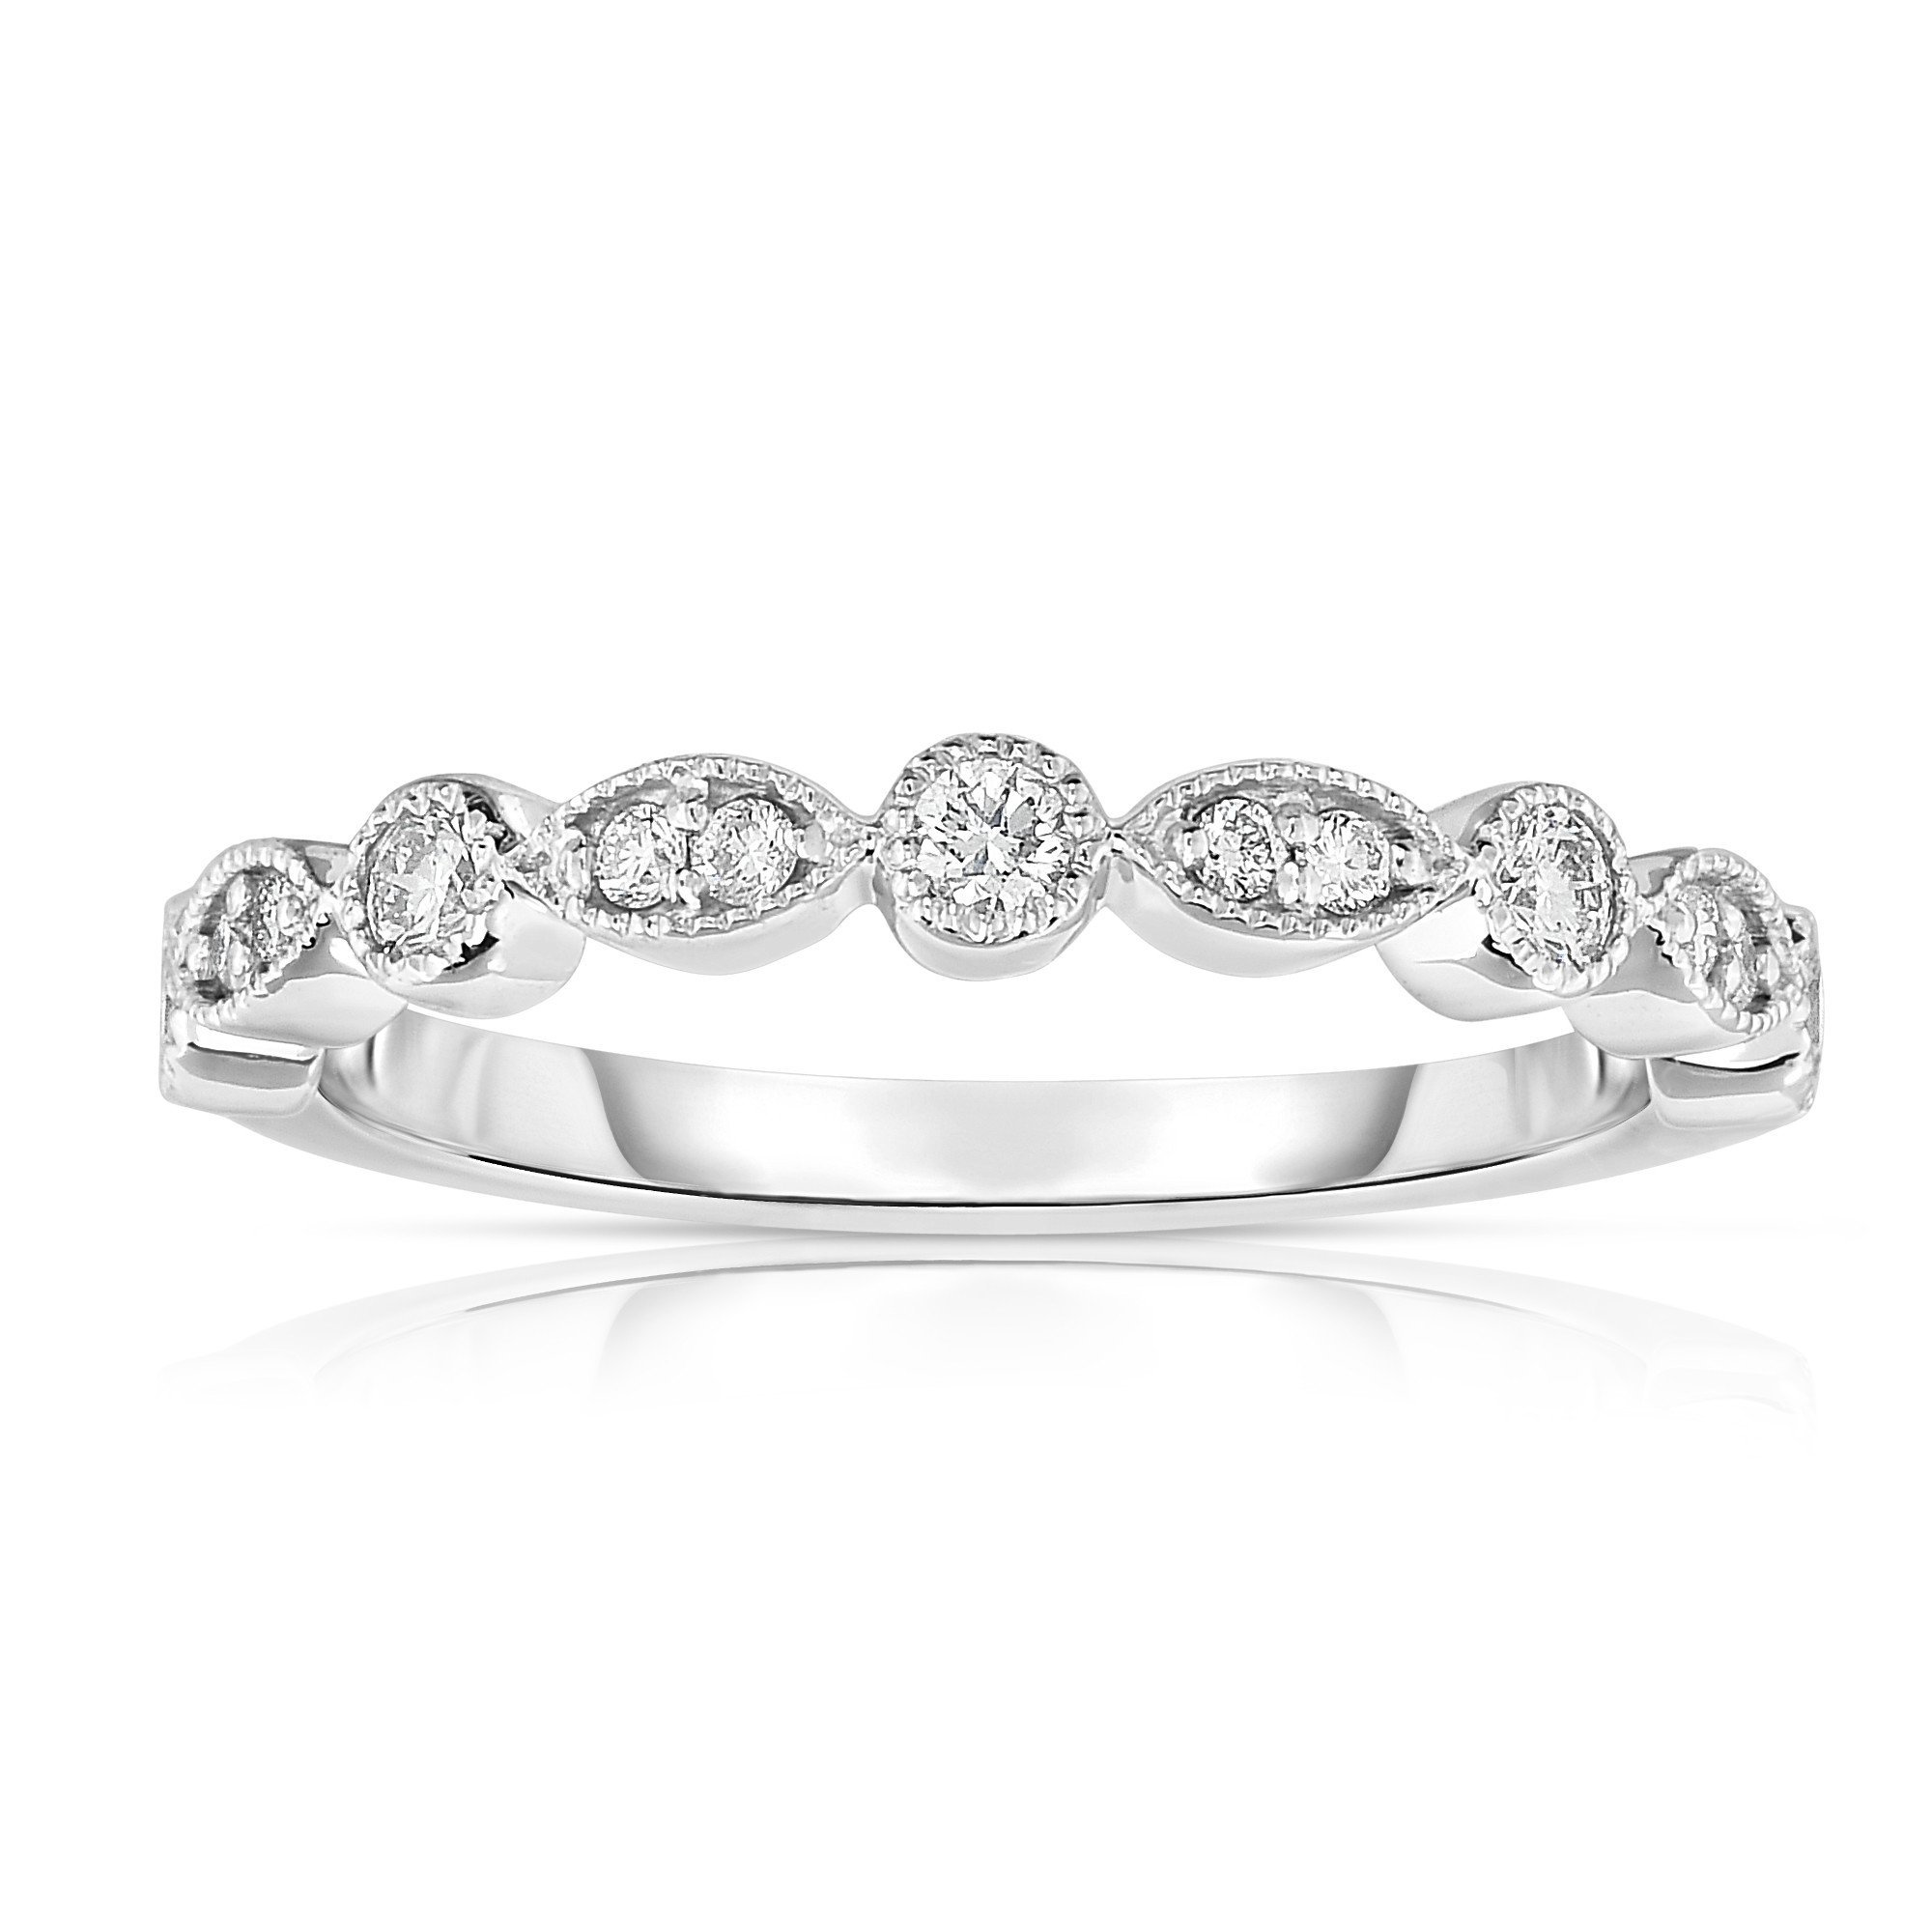 Noray Designs 14K White Gold Diamond (1/4 Ct, G-H Color, SI2-I1 Clarity) Stackable Milligrain Ring